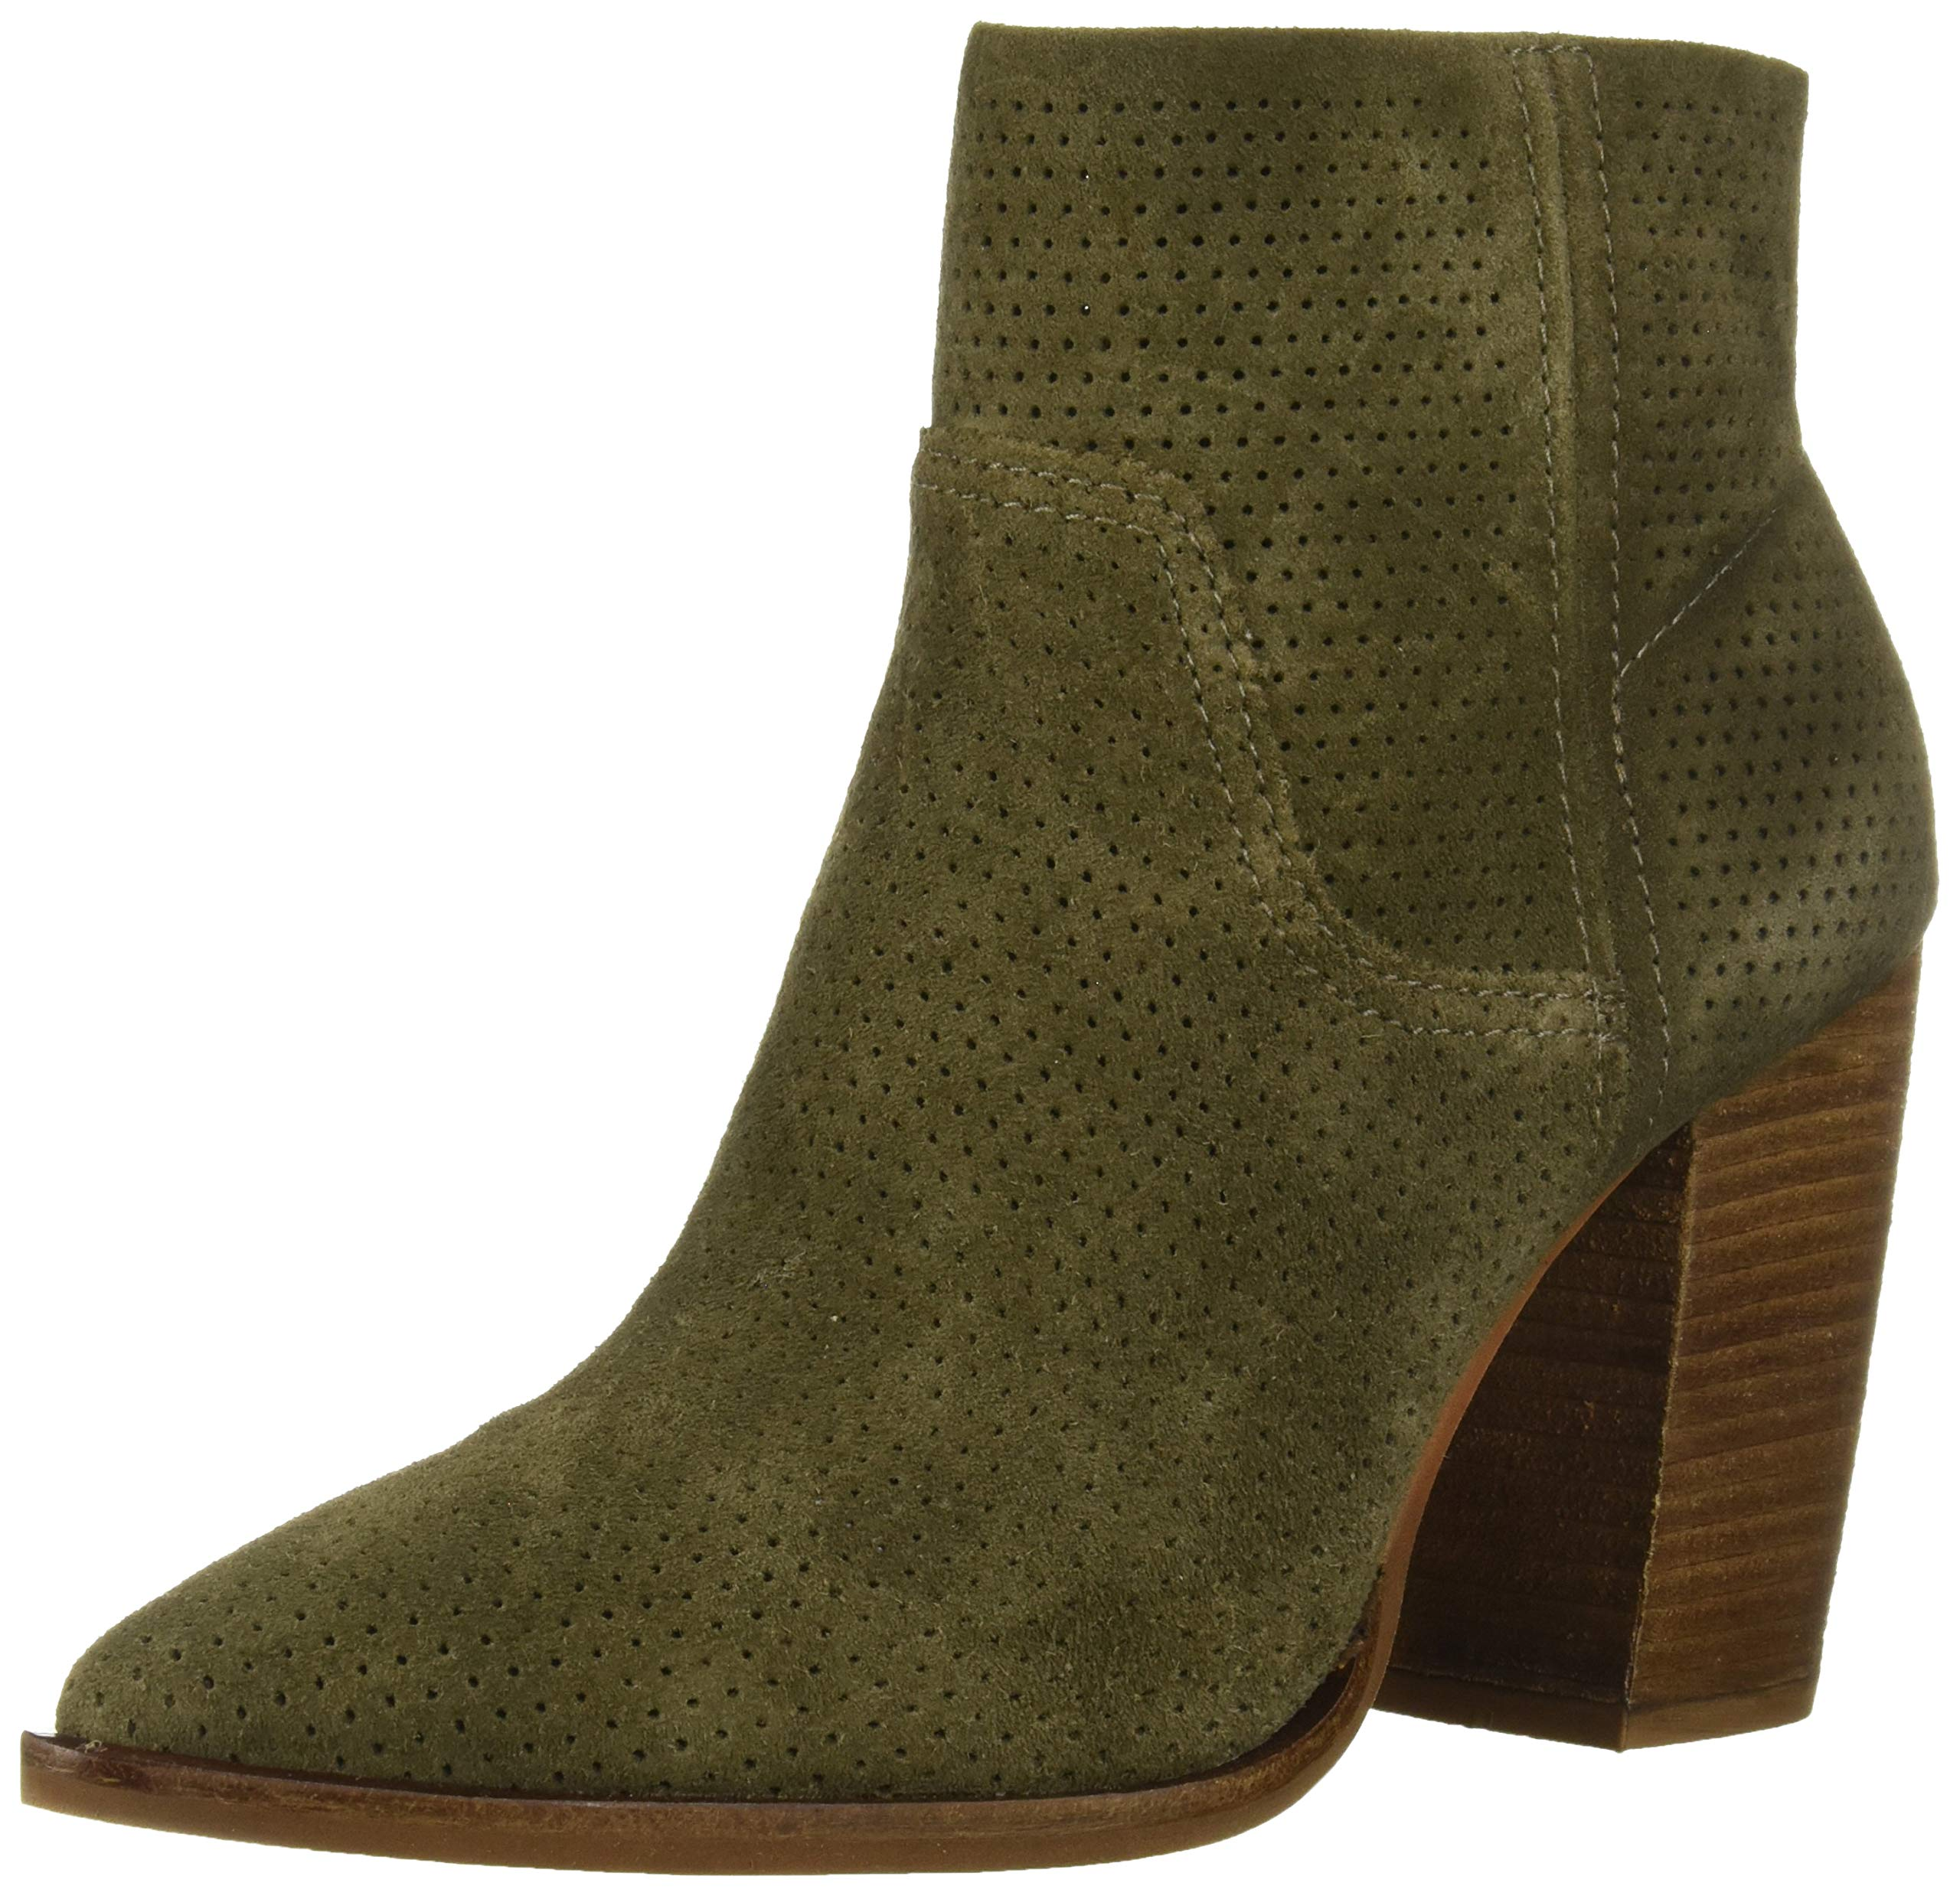 Vince Camuto Women's CAVA Ankle Boot, Dark Green 01, 6 Medium US by Vince Camuto